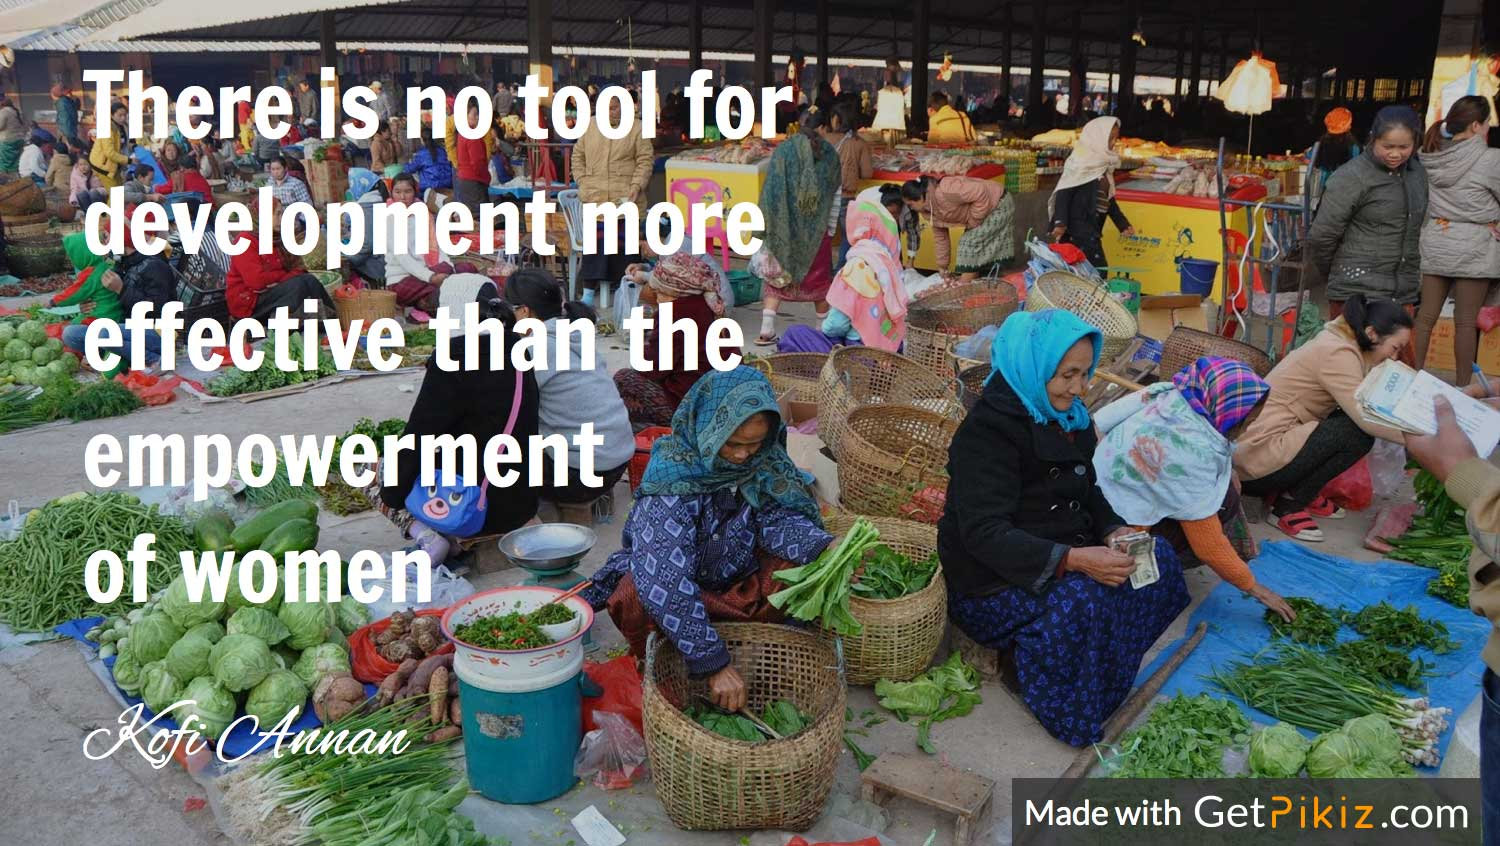 There is no tool for development more effective than the empowerment of women - Kofi Annan